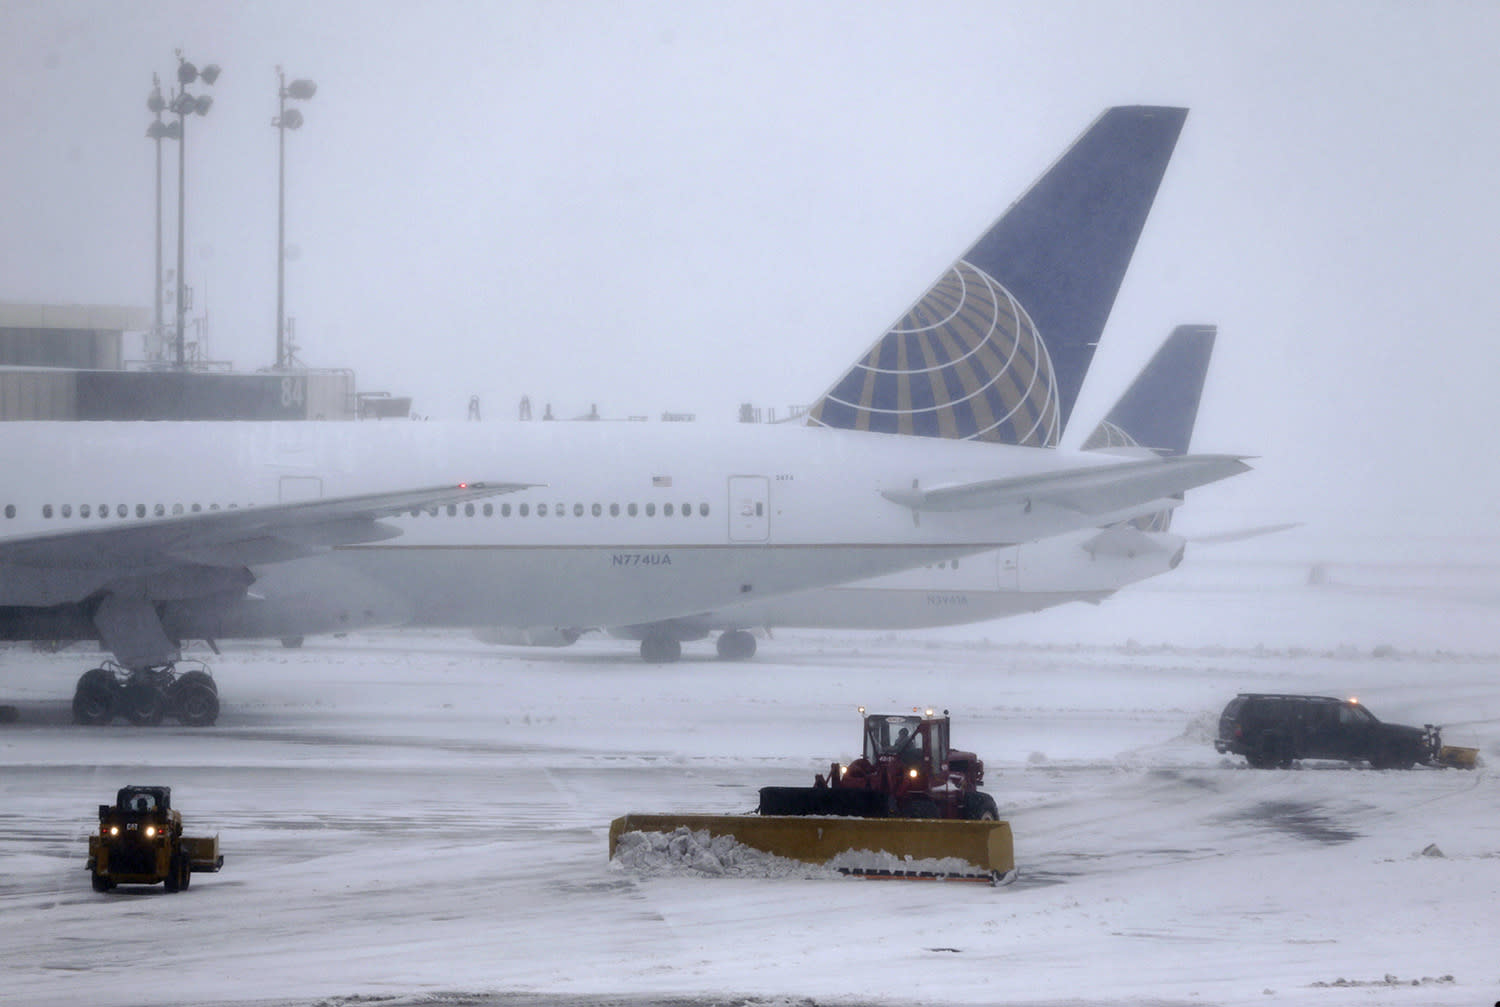 <p>Snowplows work to keep the grounds clear at Newark Liberty International Airport in Newark, N.J., Tuesday, March 14, 2017. A storm pounded the Northeast with more than a foot of snow in places Tuesday, paralyzing much of the Washington-to-Boston corridor after a remarkably mild February had lulled people into thinking the worst of winter was over. (Seth Wenig/AP) </p>